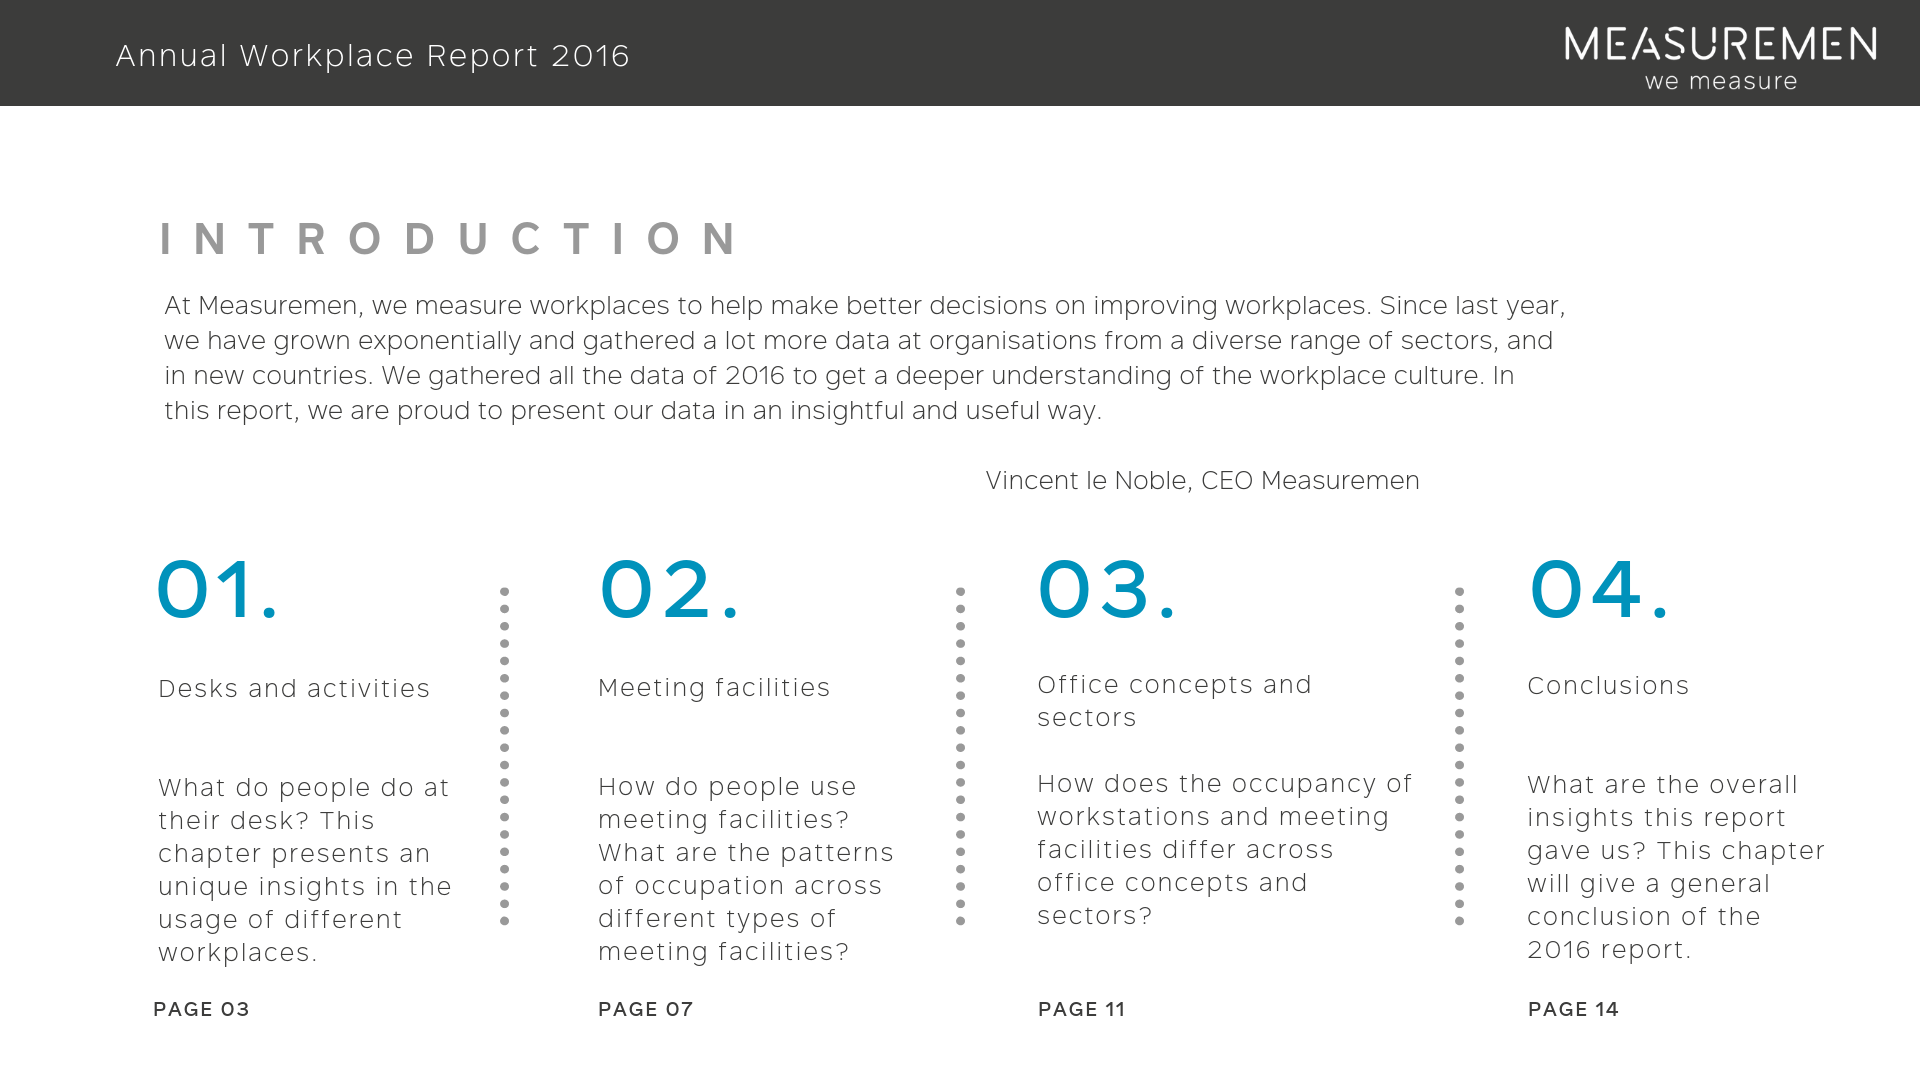 Measuremen Annual Workplace Report 2016